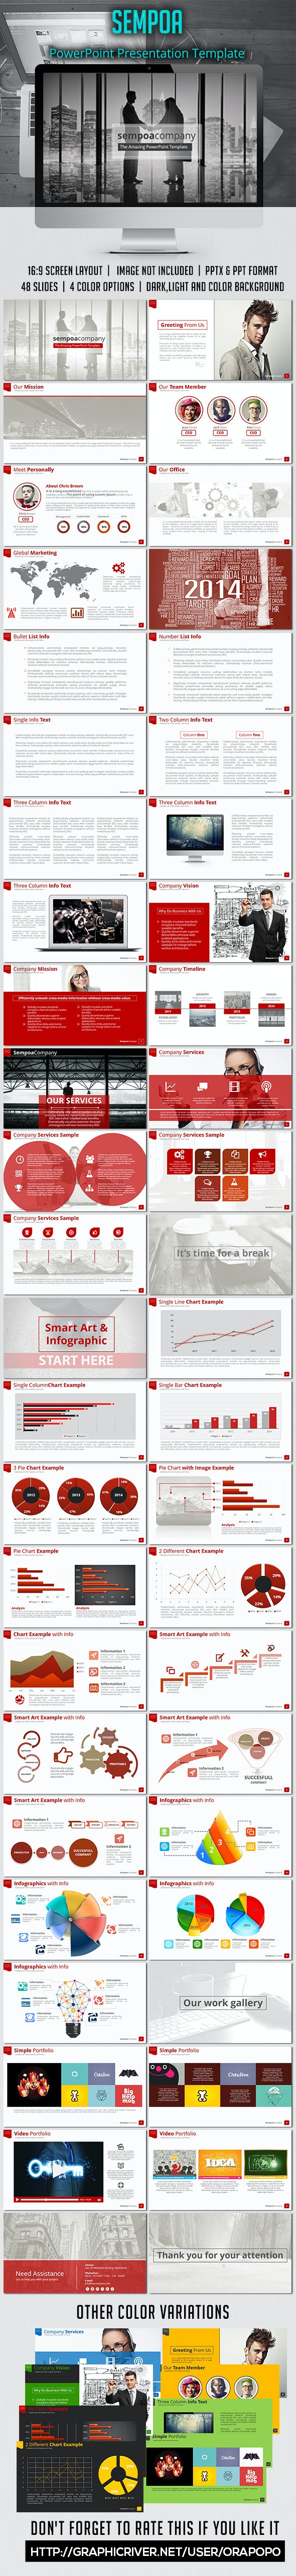 Sempoa PowerPoint Presentation Template - Business PowerPoint Templates